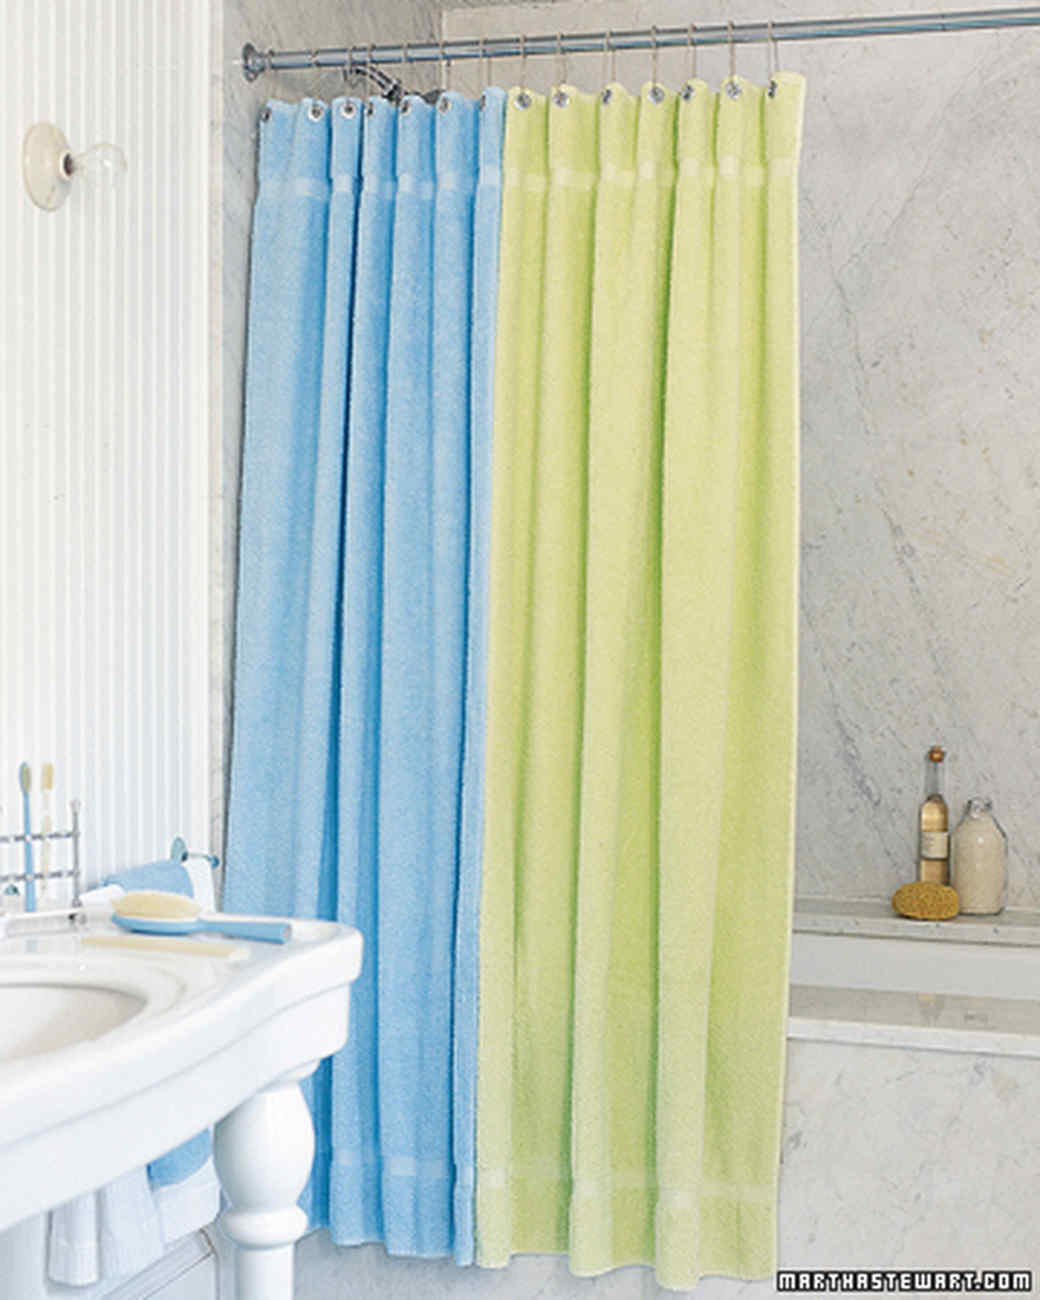 How To Make Shower Curtain Terry Cloth Curtain Martha Stewart